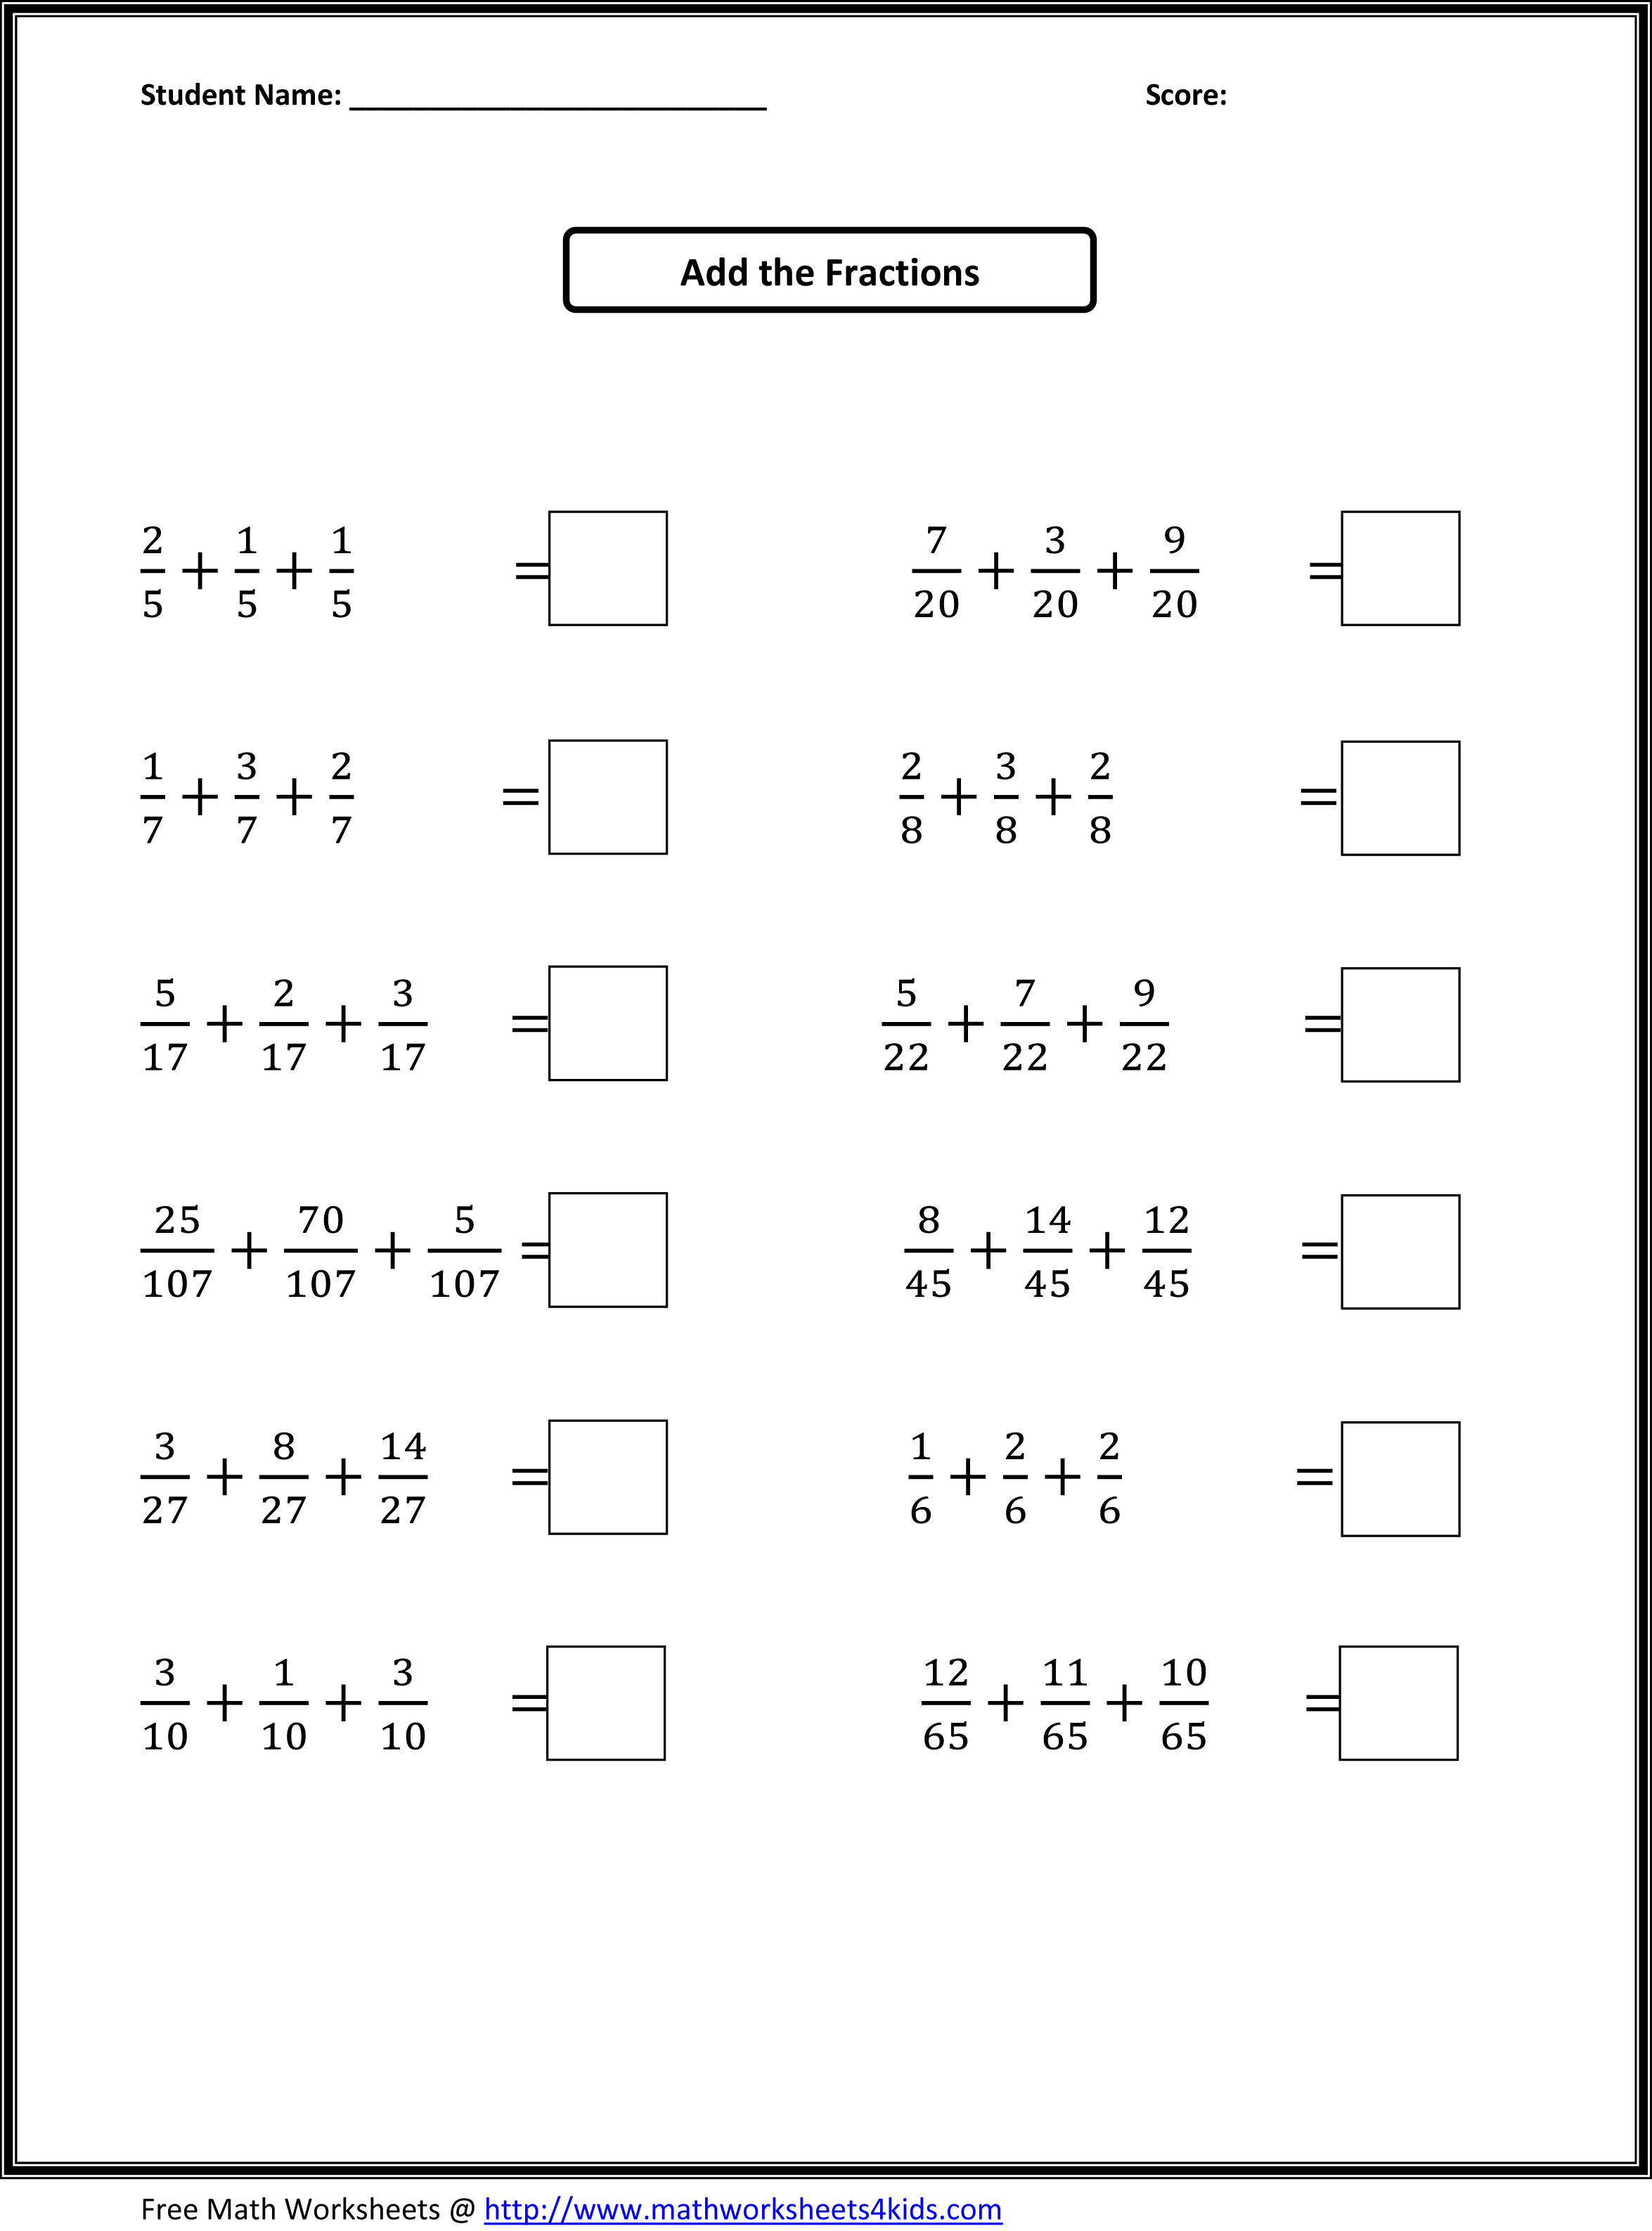 Printables Math Worksheets For 6 Graders 4th grade math worksheets multiplying fractions kids activities addition of worksheets